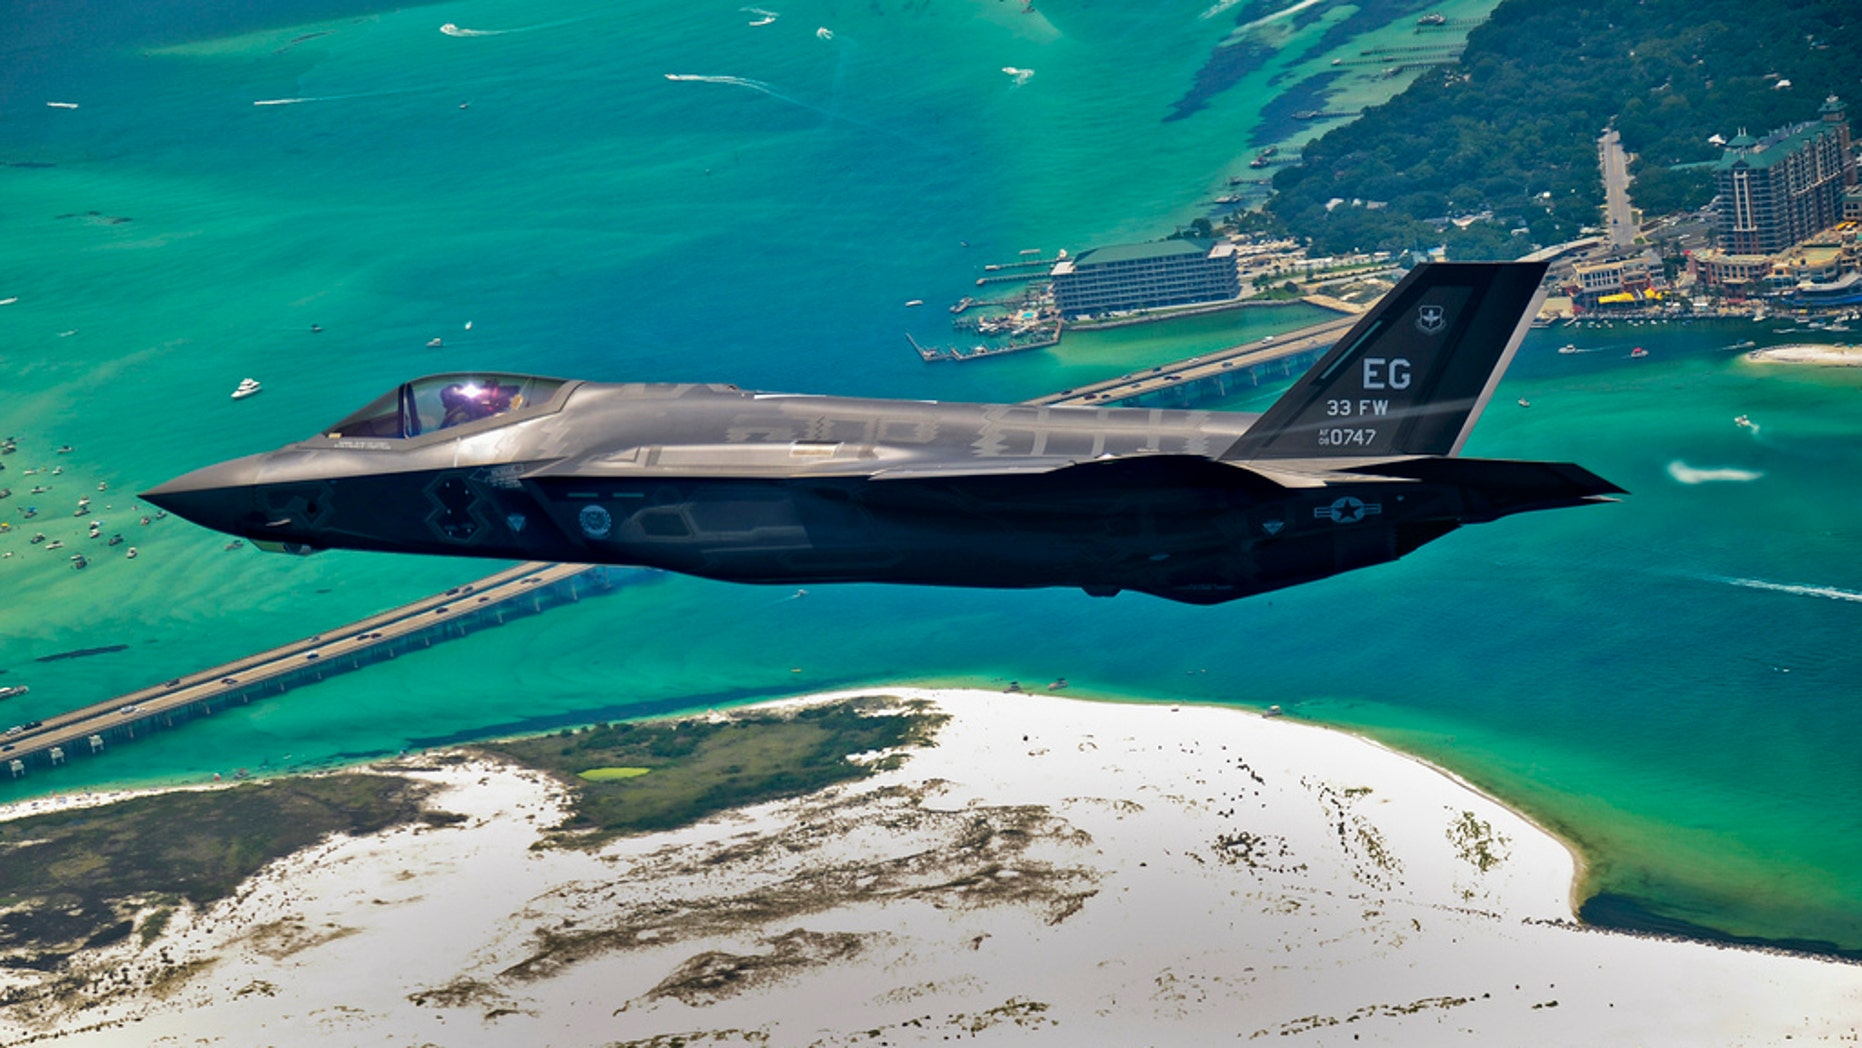 An F-35 Lightning II flies over Destin, Fla., before landing at its new home at Eglin Air Force Base, Fla., July 14, 2011. Its pilot, Lt. Col. Eric Smith is the first Air Force qualified F-35 pilot and is assigned to the 58th Fighter Squadron.